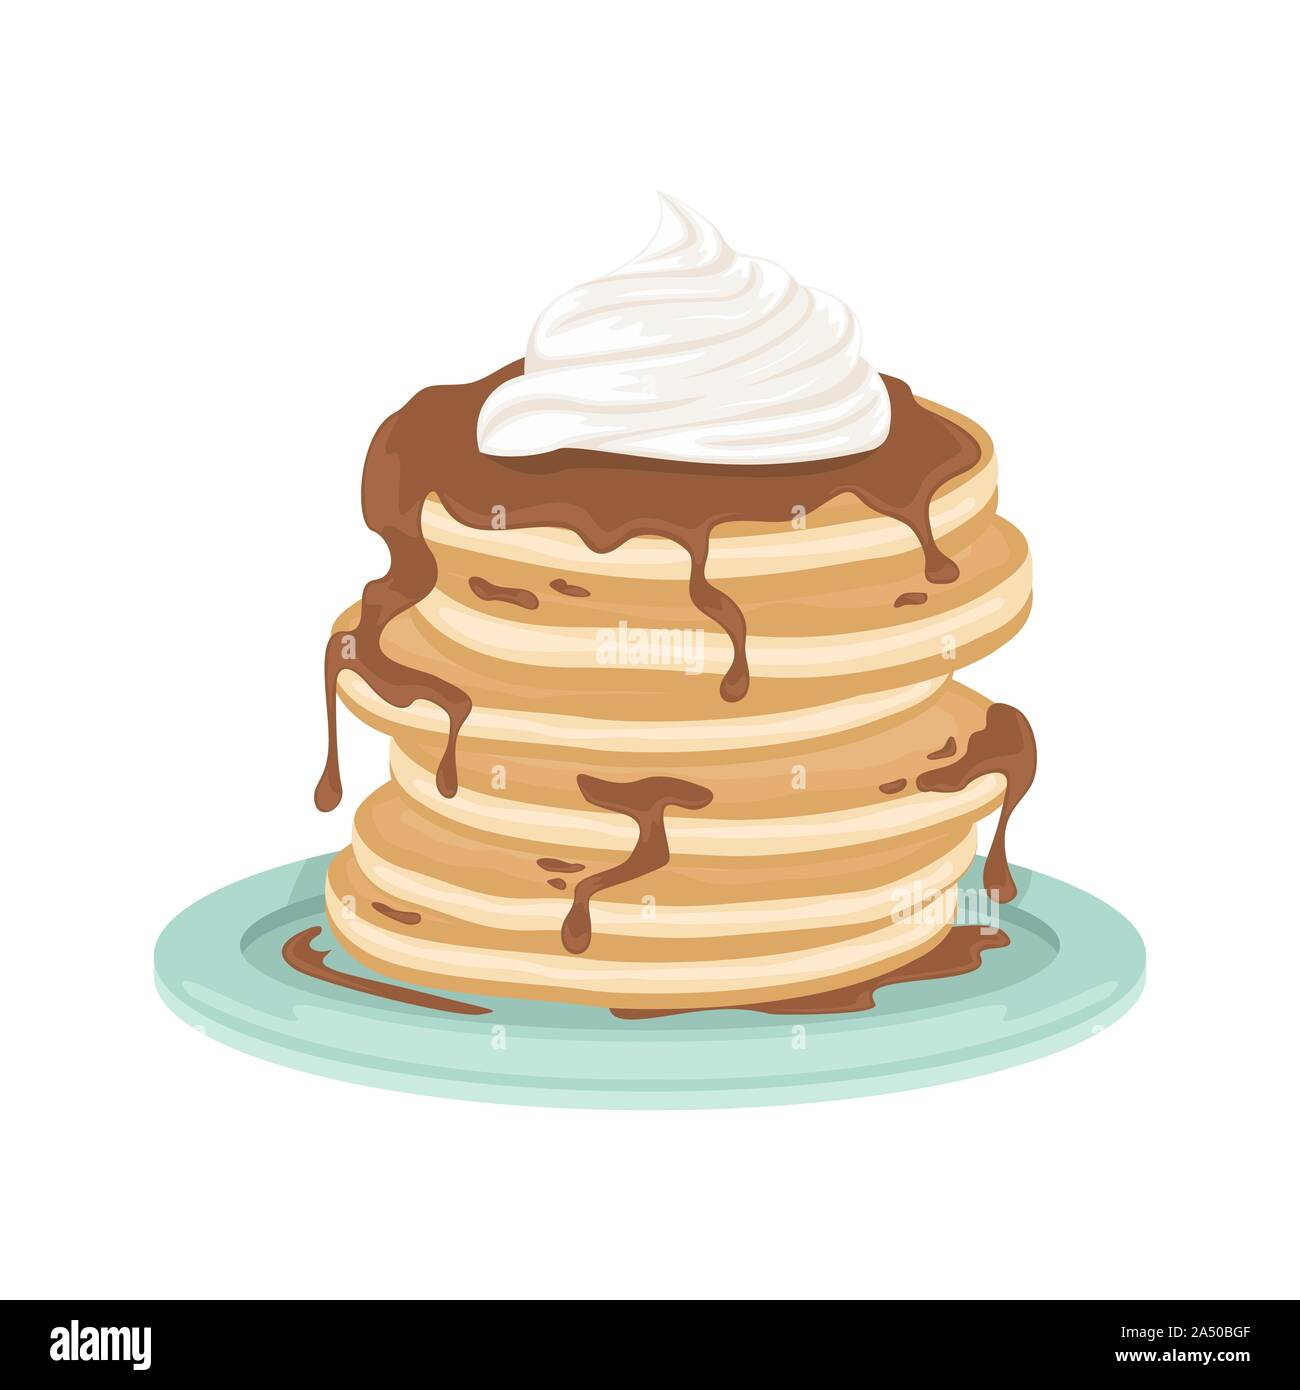 A Stack Of Fried Pancakes With Whipped Cream And Chocolate Sauce Delicious Breakfast Cartoon Vector Illustration Stock Vector Image Art Alamy